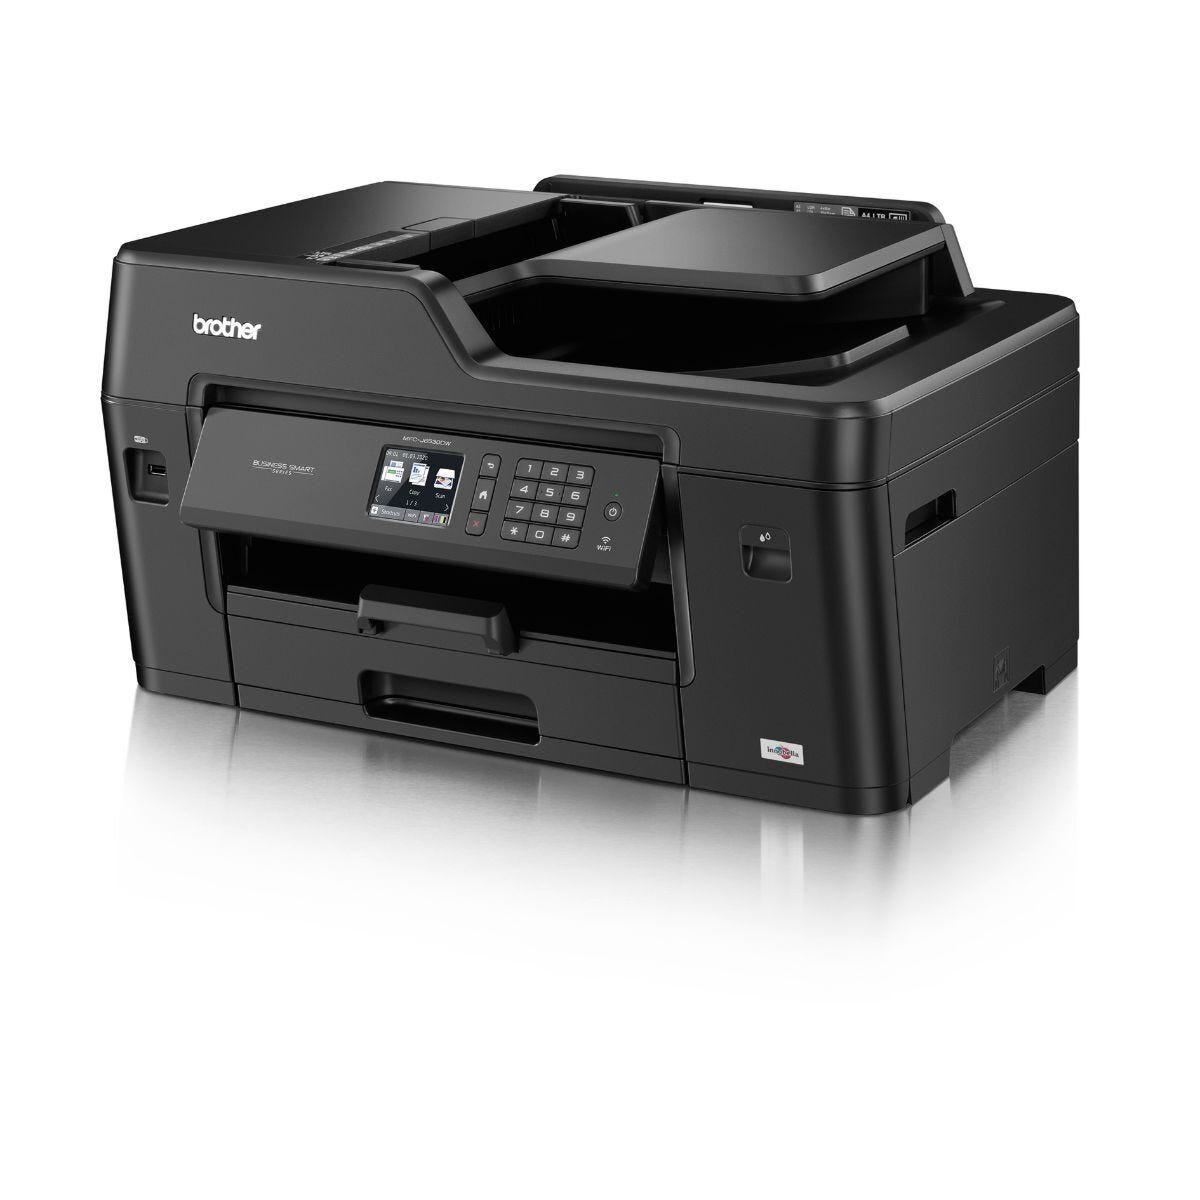 Brother MFC-J6530DW All in One Wireless A3 Inkjet Printer with Fax